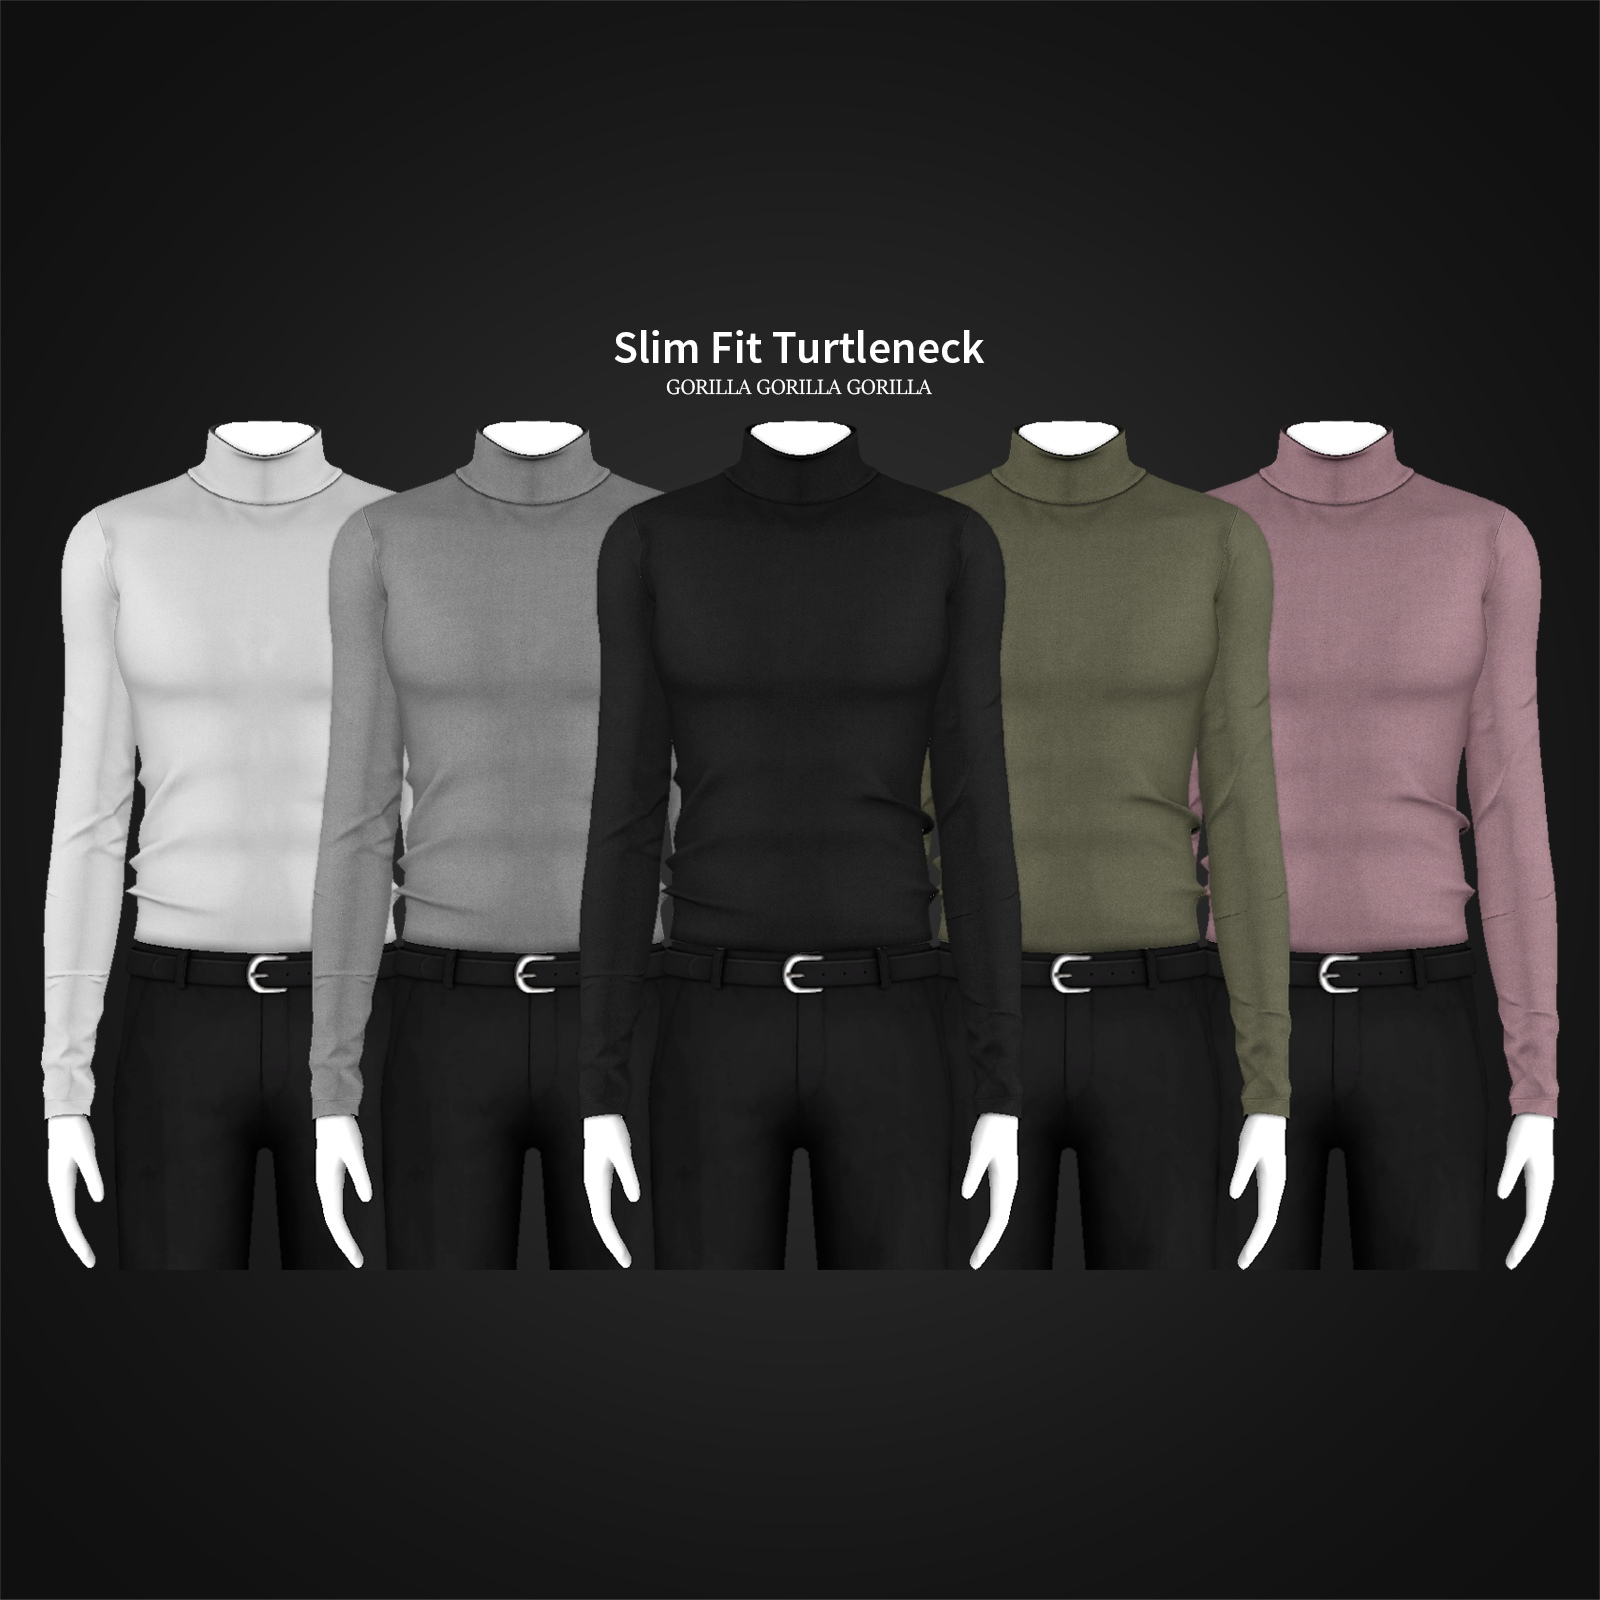 Slim Fit Turtleneck by Gorilla